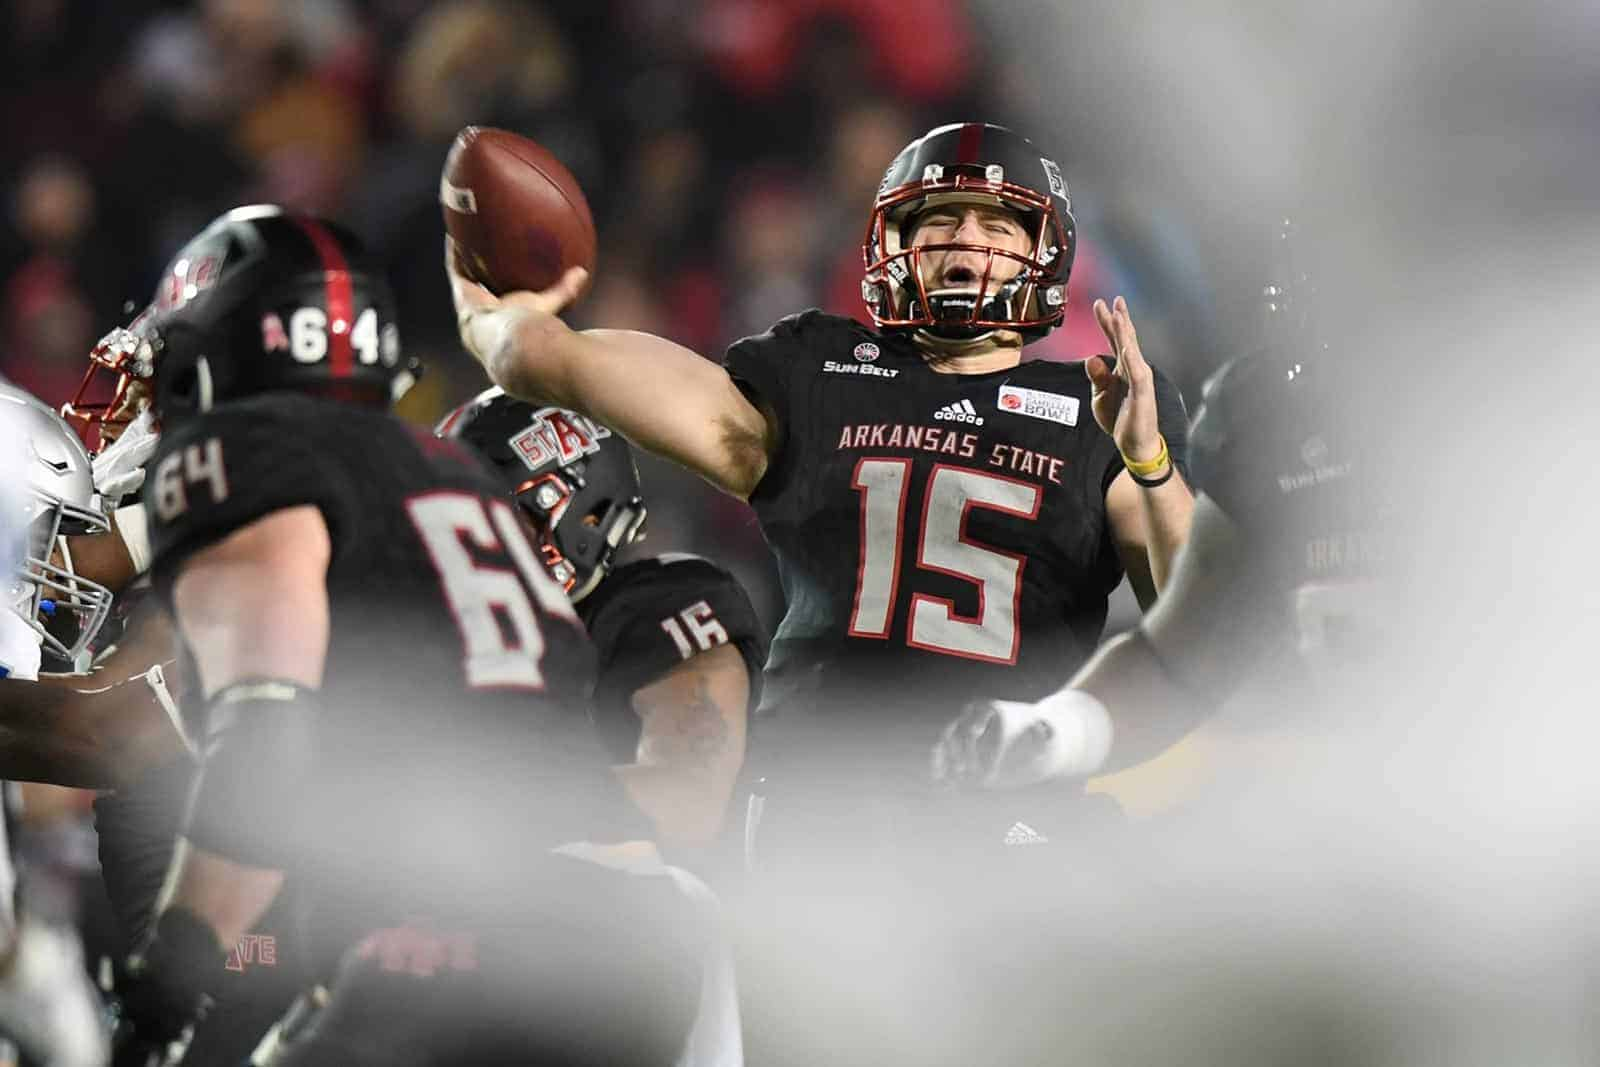 College Football Schedule: A-State